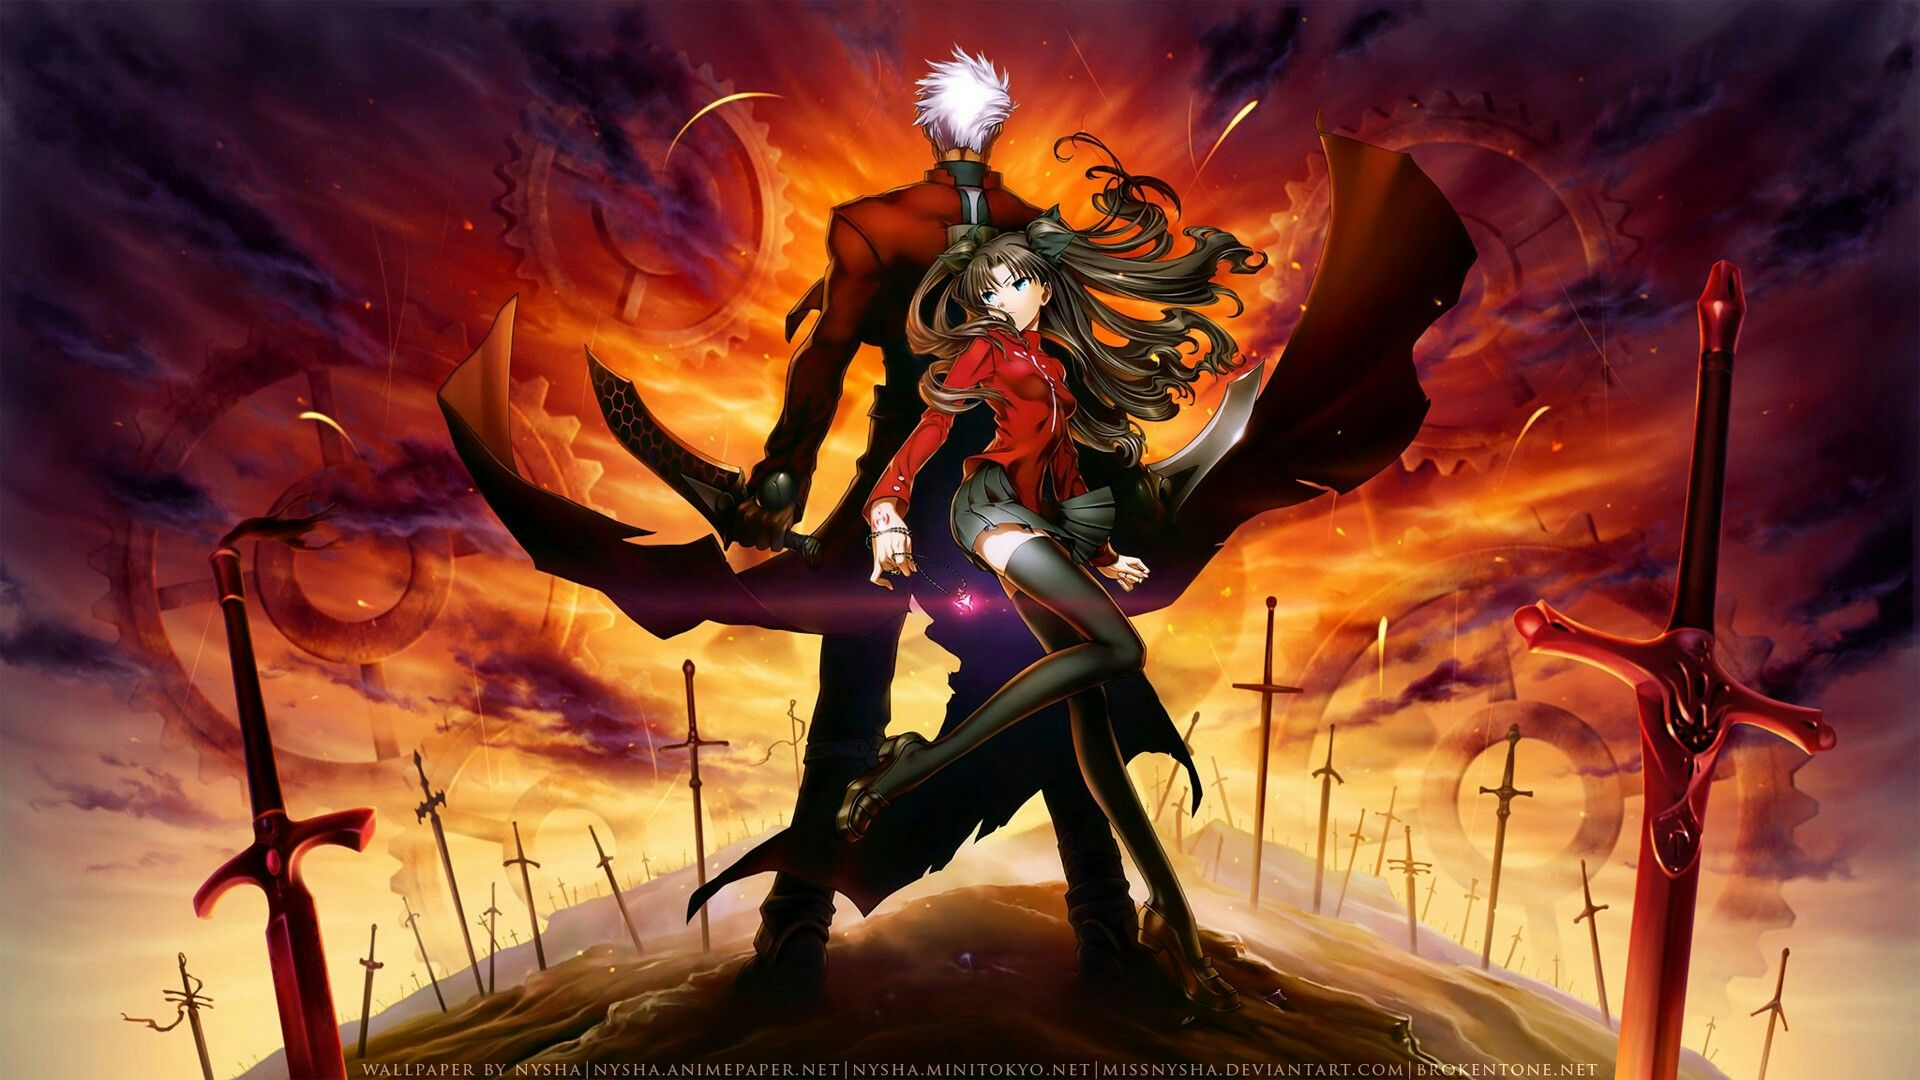 Fate Stay Night cool pics Fate stay night anime, Fate